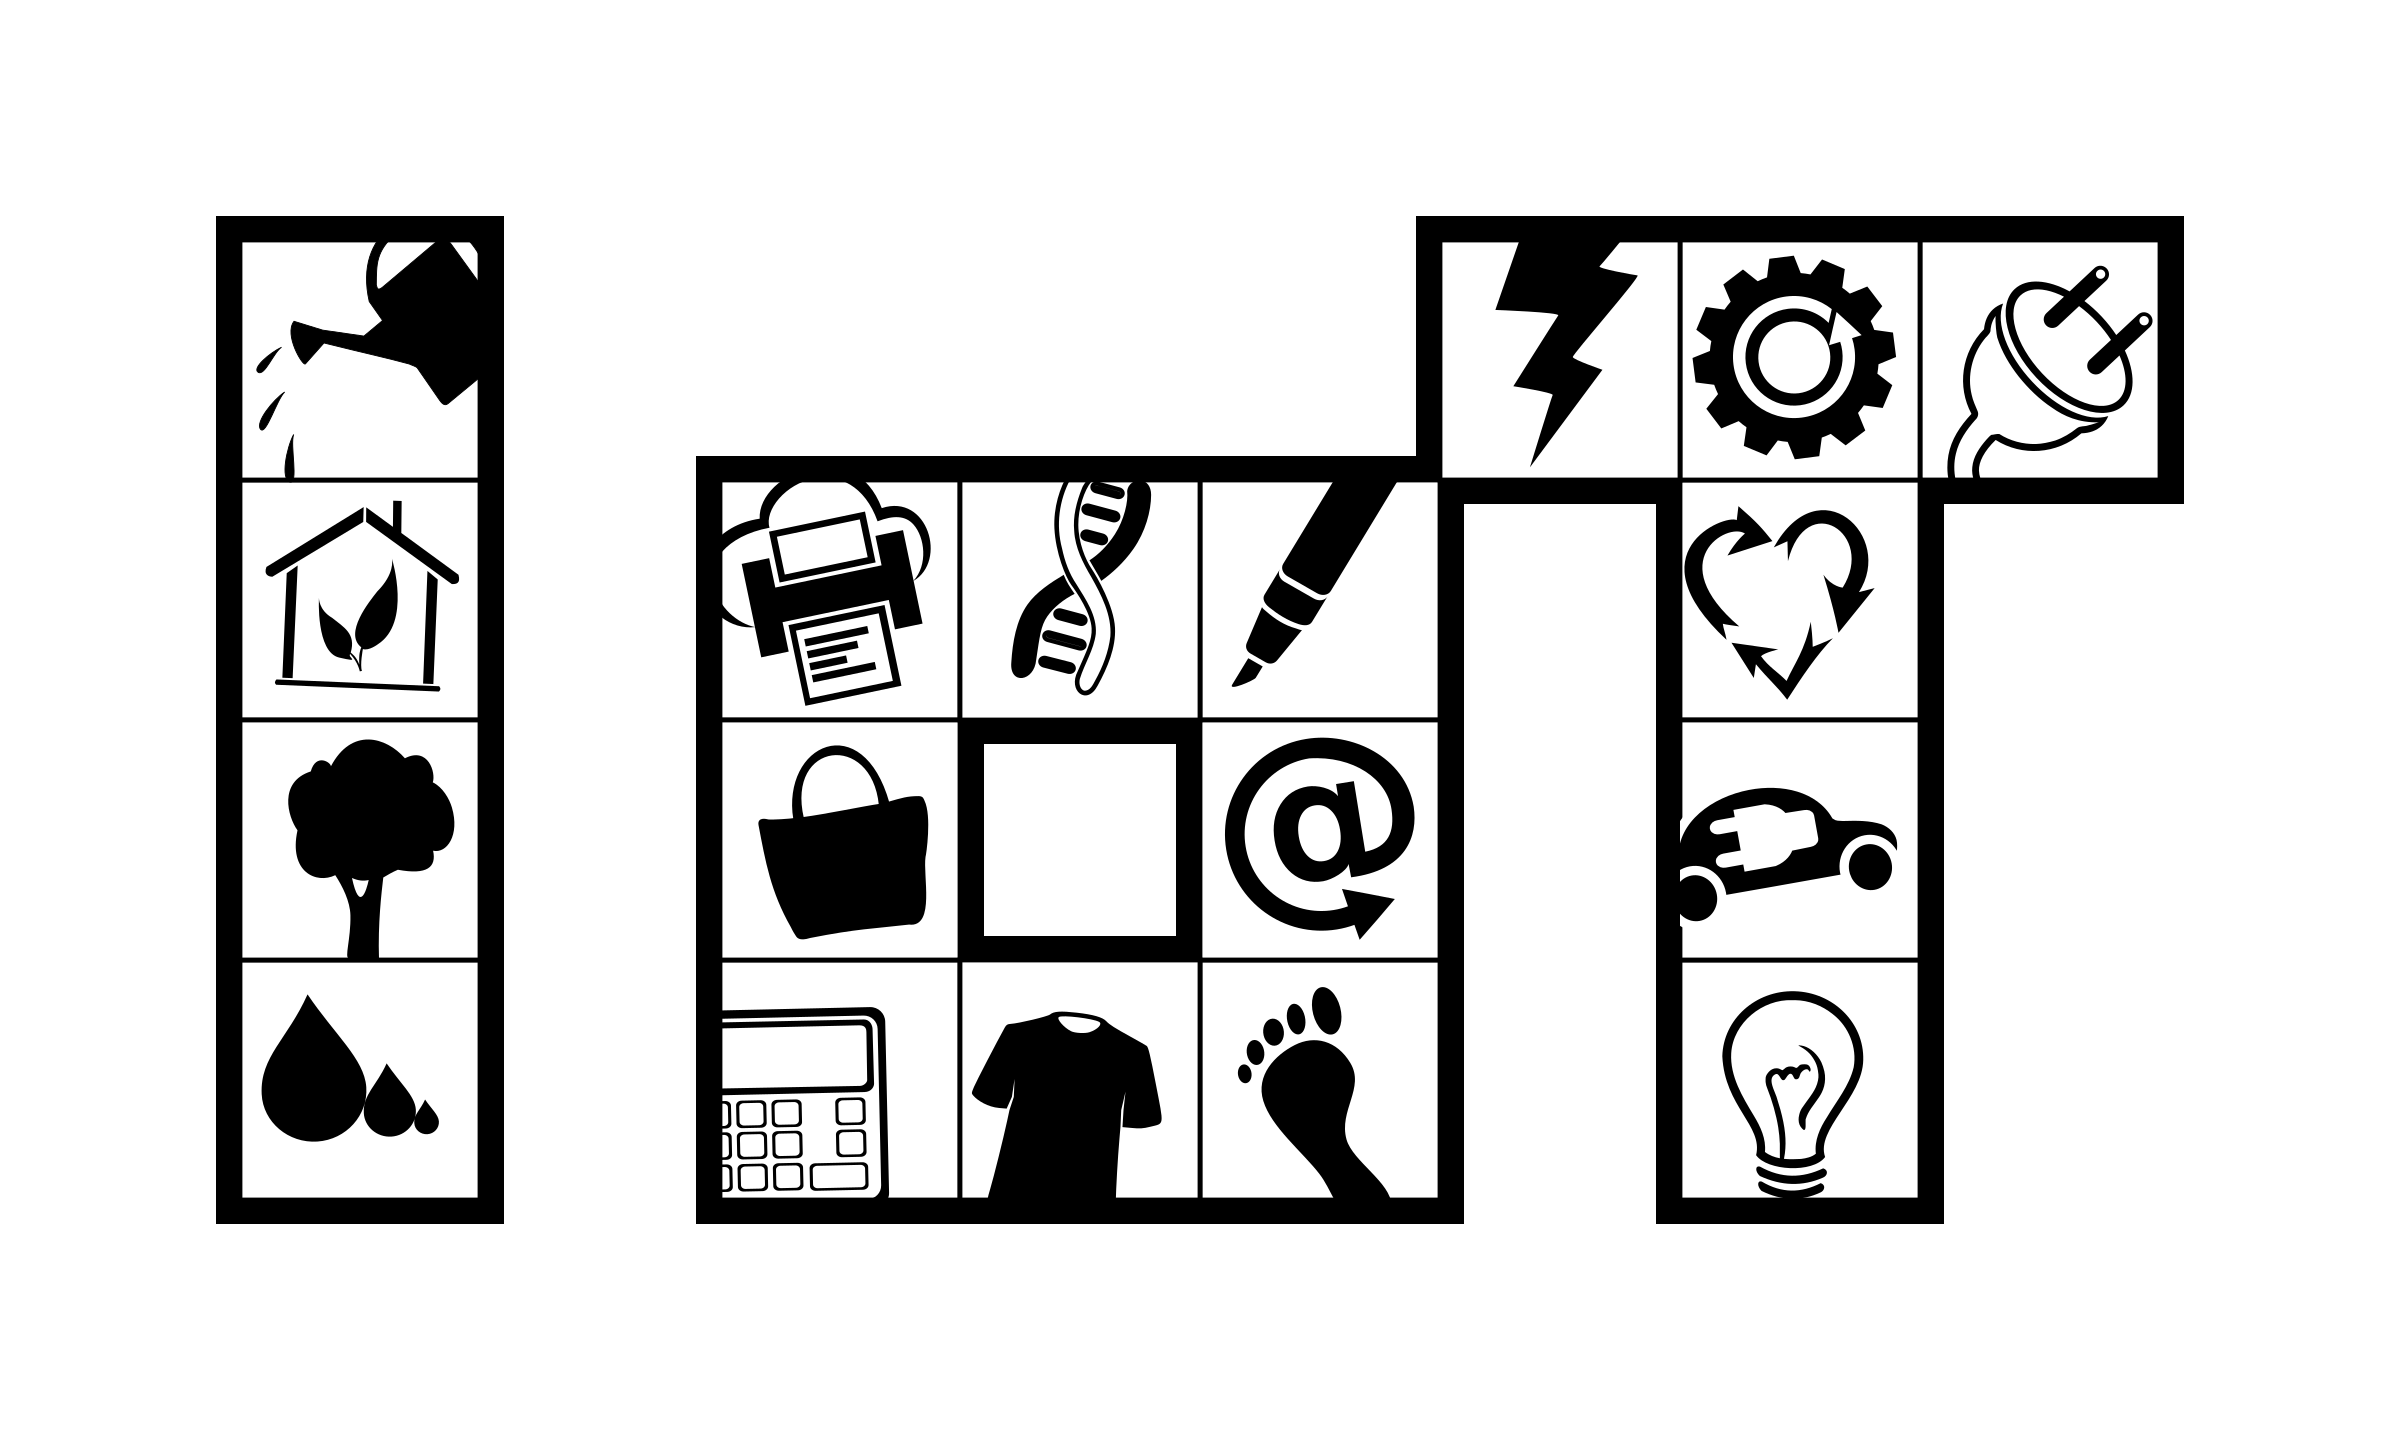 Of things iot square. Internet clipart internet sign svg download